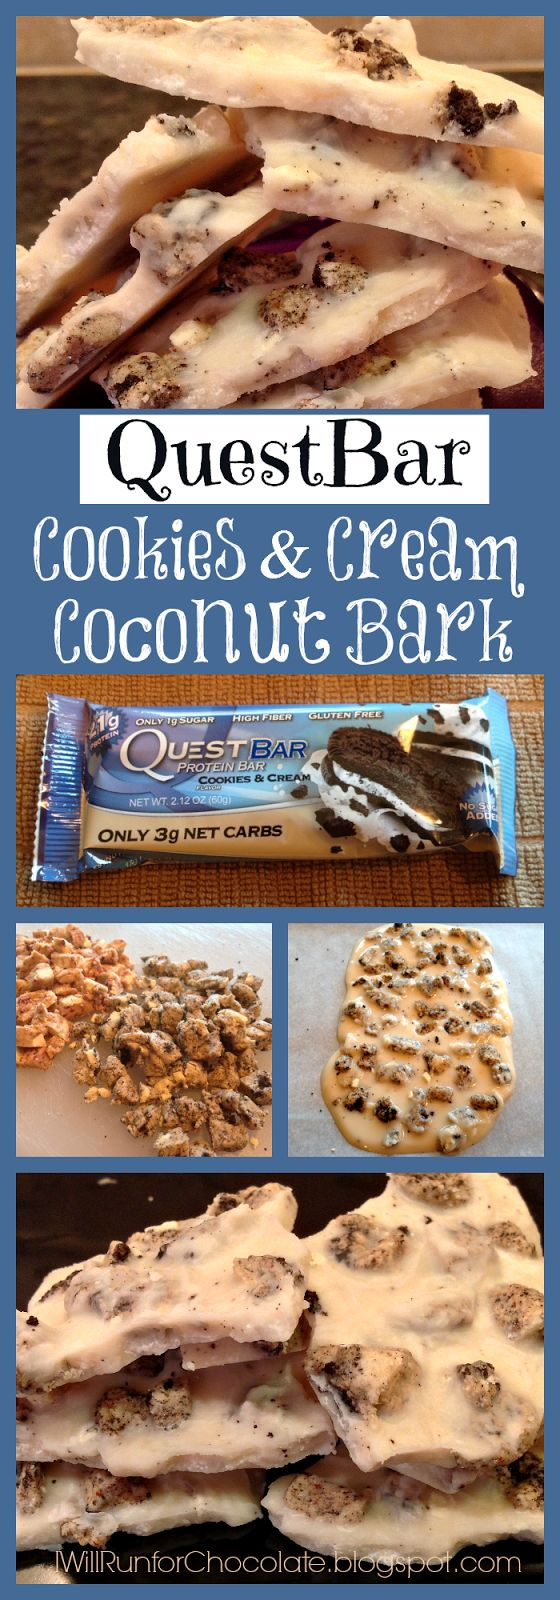 Quest Bar Cookies & Cream Coconut Bark * A healthy recipe for the brand new Quest bar flavor! * IWillRunForChocolate. blogspot.com